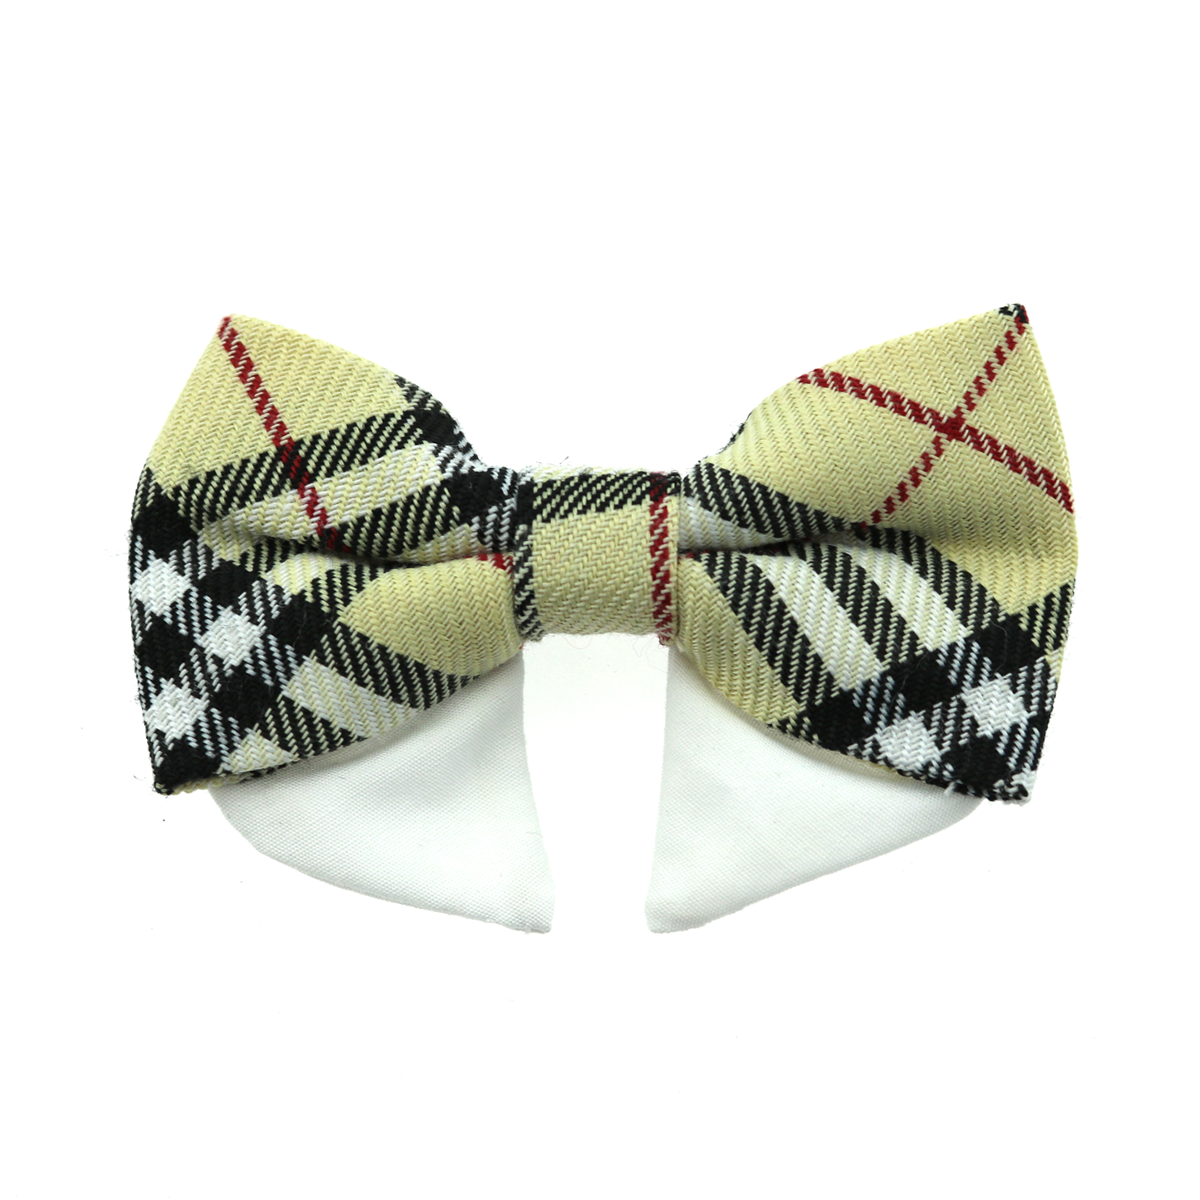 Dog Bow Tie Collar Attachment by Doggie Design - Tan Plaid